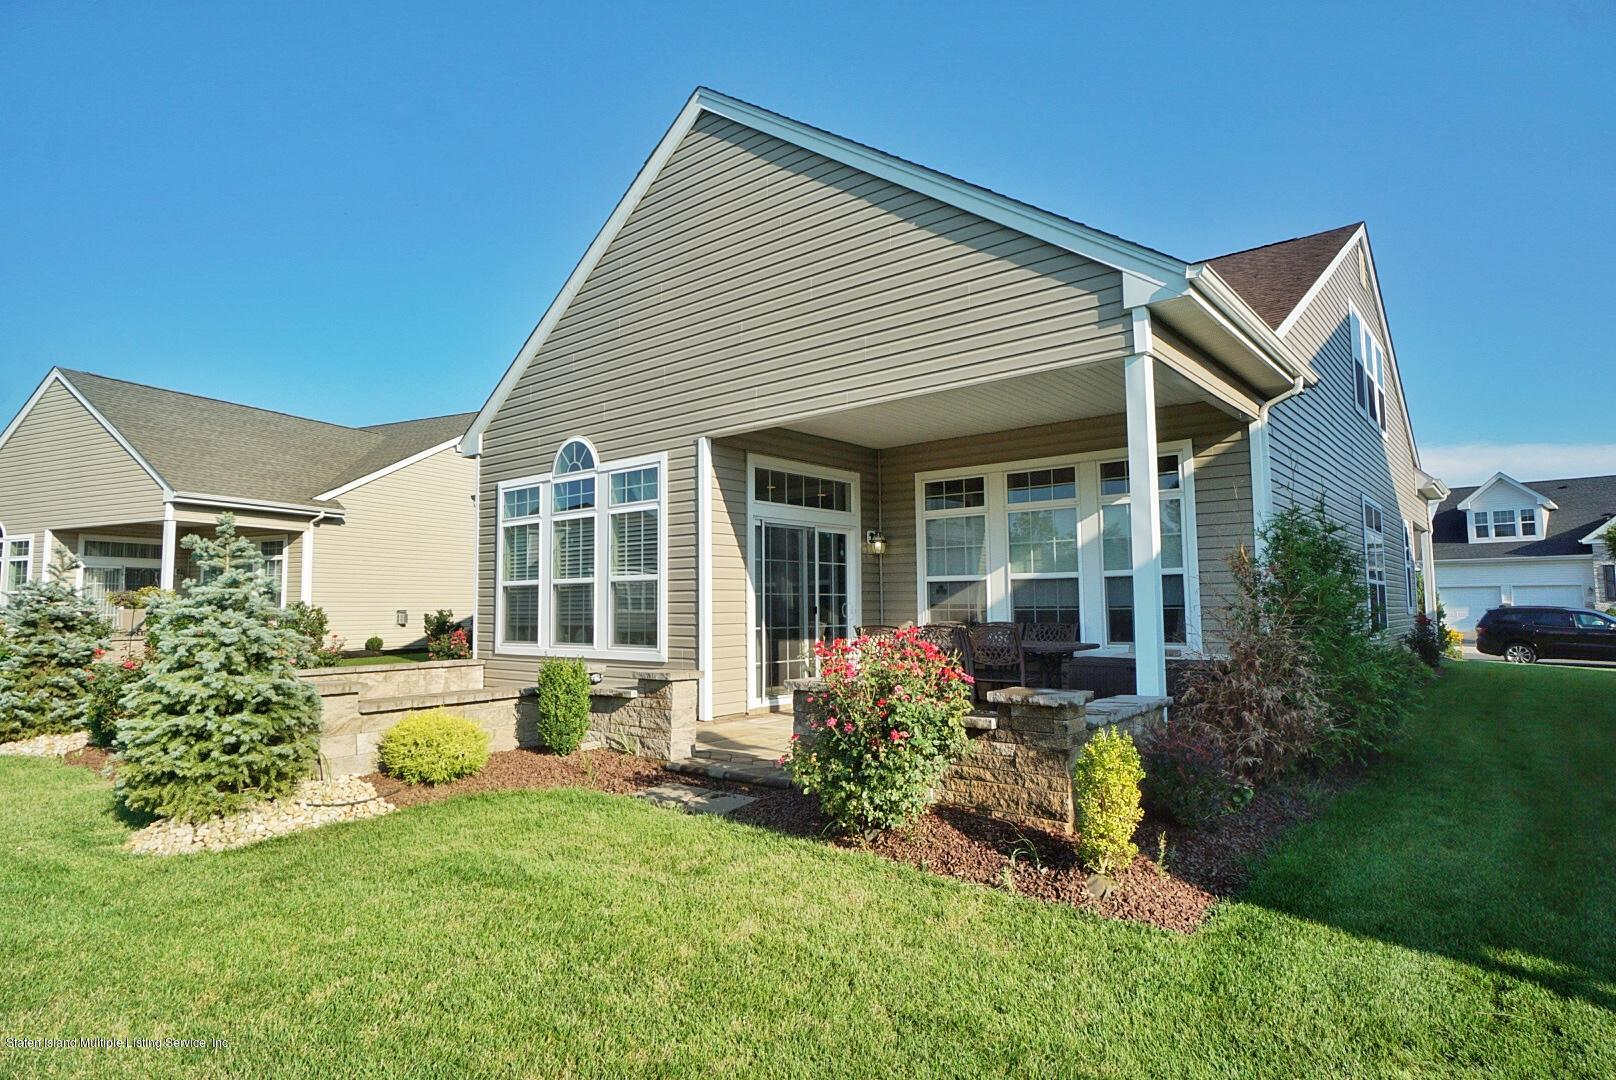 Single Family - Detached 141 Cobblestone Boulevard  Out Of Area, NY 08831, MLS-1139044-37